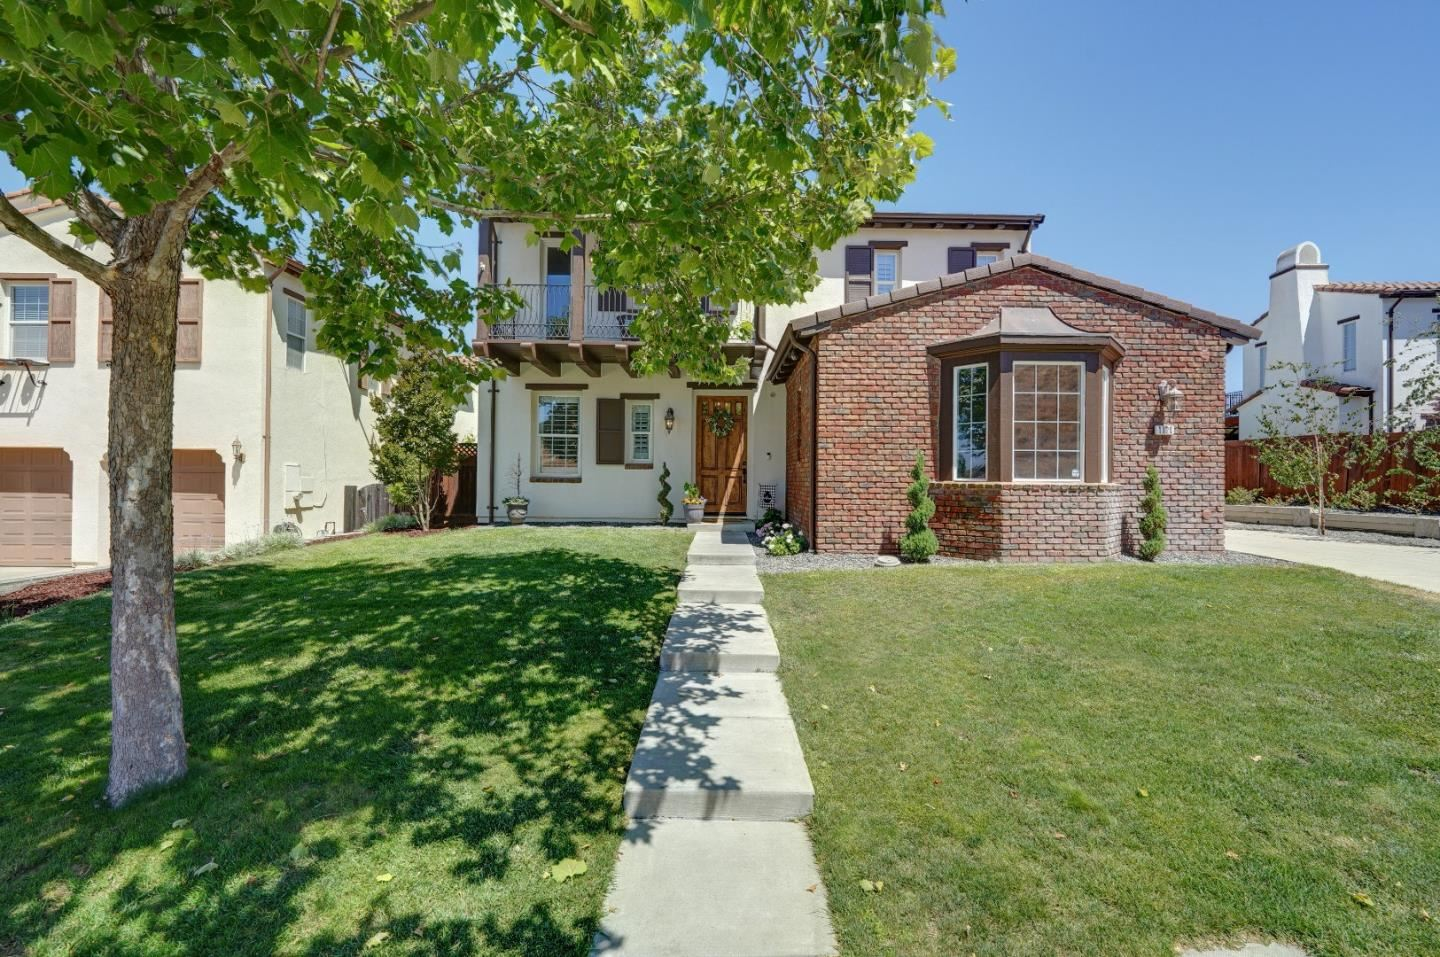 Photo for 1120 Olympic Court, GILROY, CA 95020 (MLS # ML81846534)